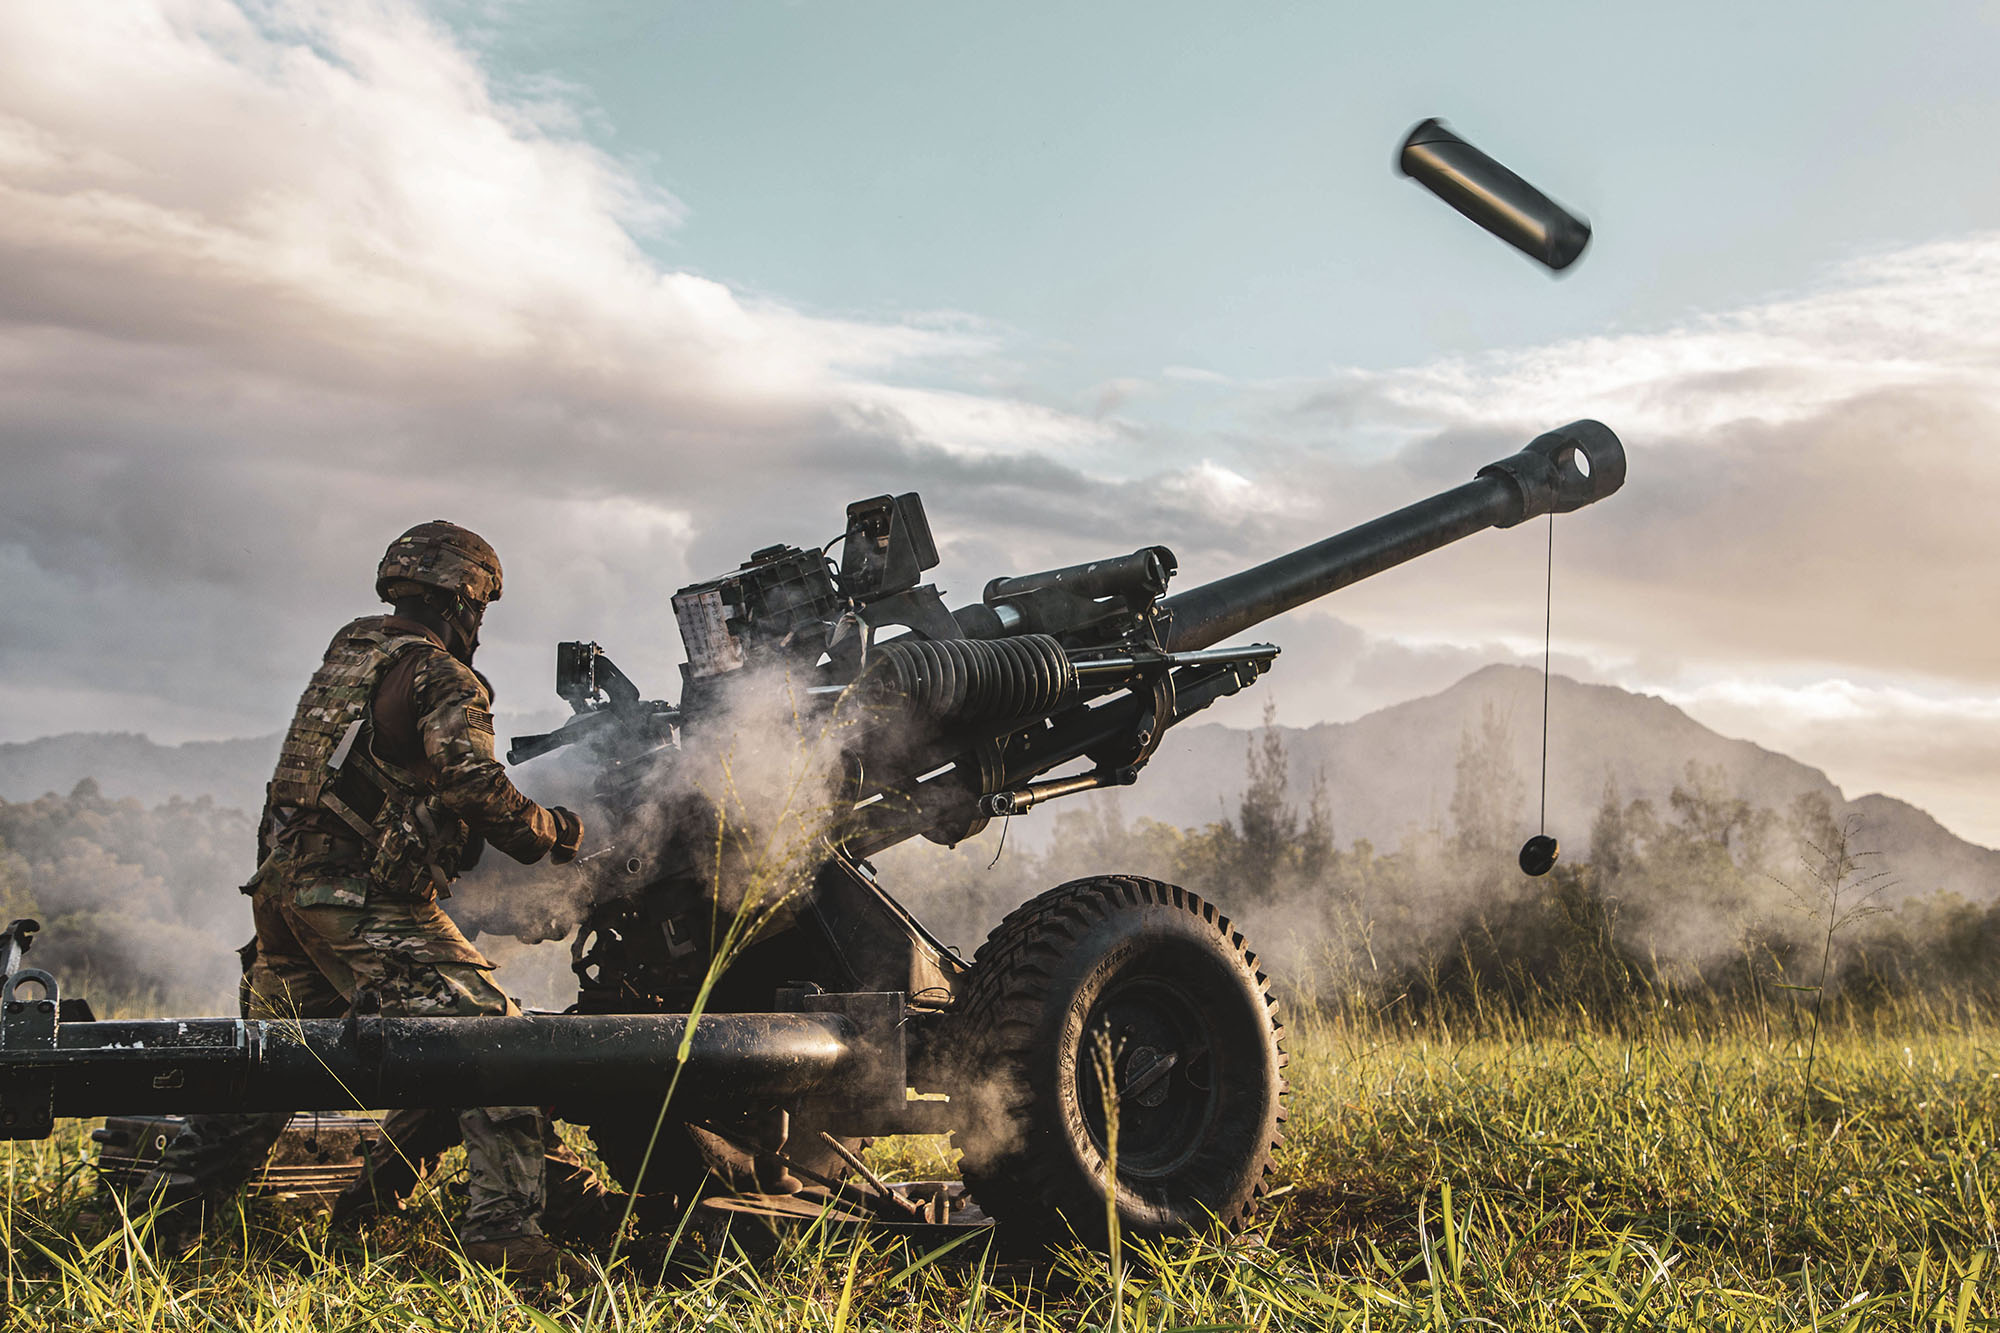 Service members participate in an exercise called Operation Wardog Kila for a joint live-fire exercise at Schofield Barracks, Hawaii, Dec. 30, 2020, with the 25th Combat Aviation Brigade, 25th Infantry Division Artillery units and the U.S. Marine Corps. (Sgt. Sarah D. Sangster/Army)